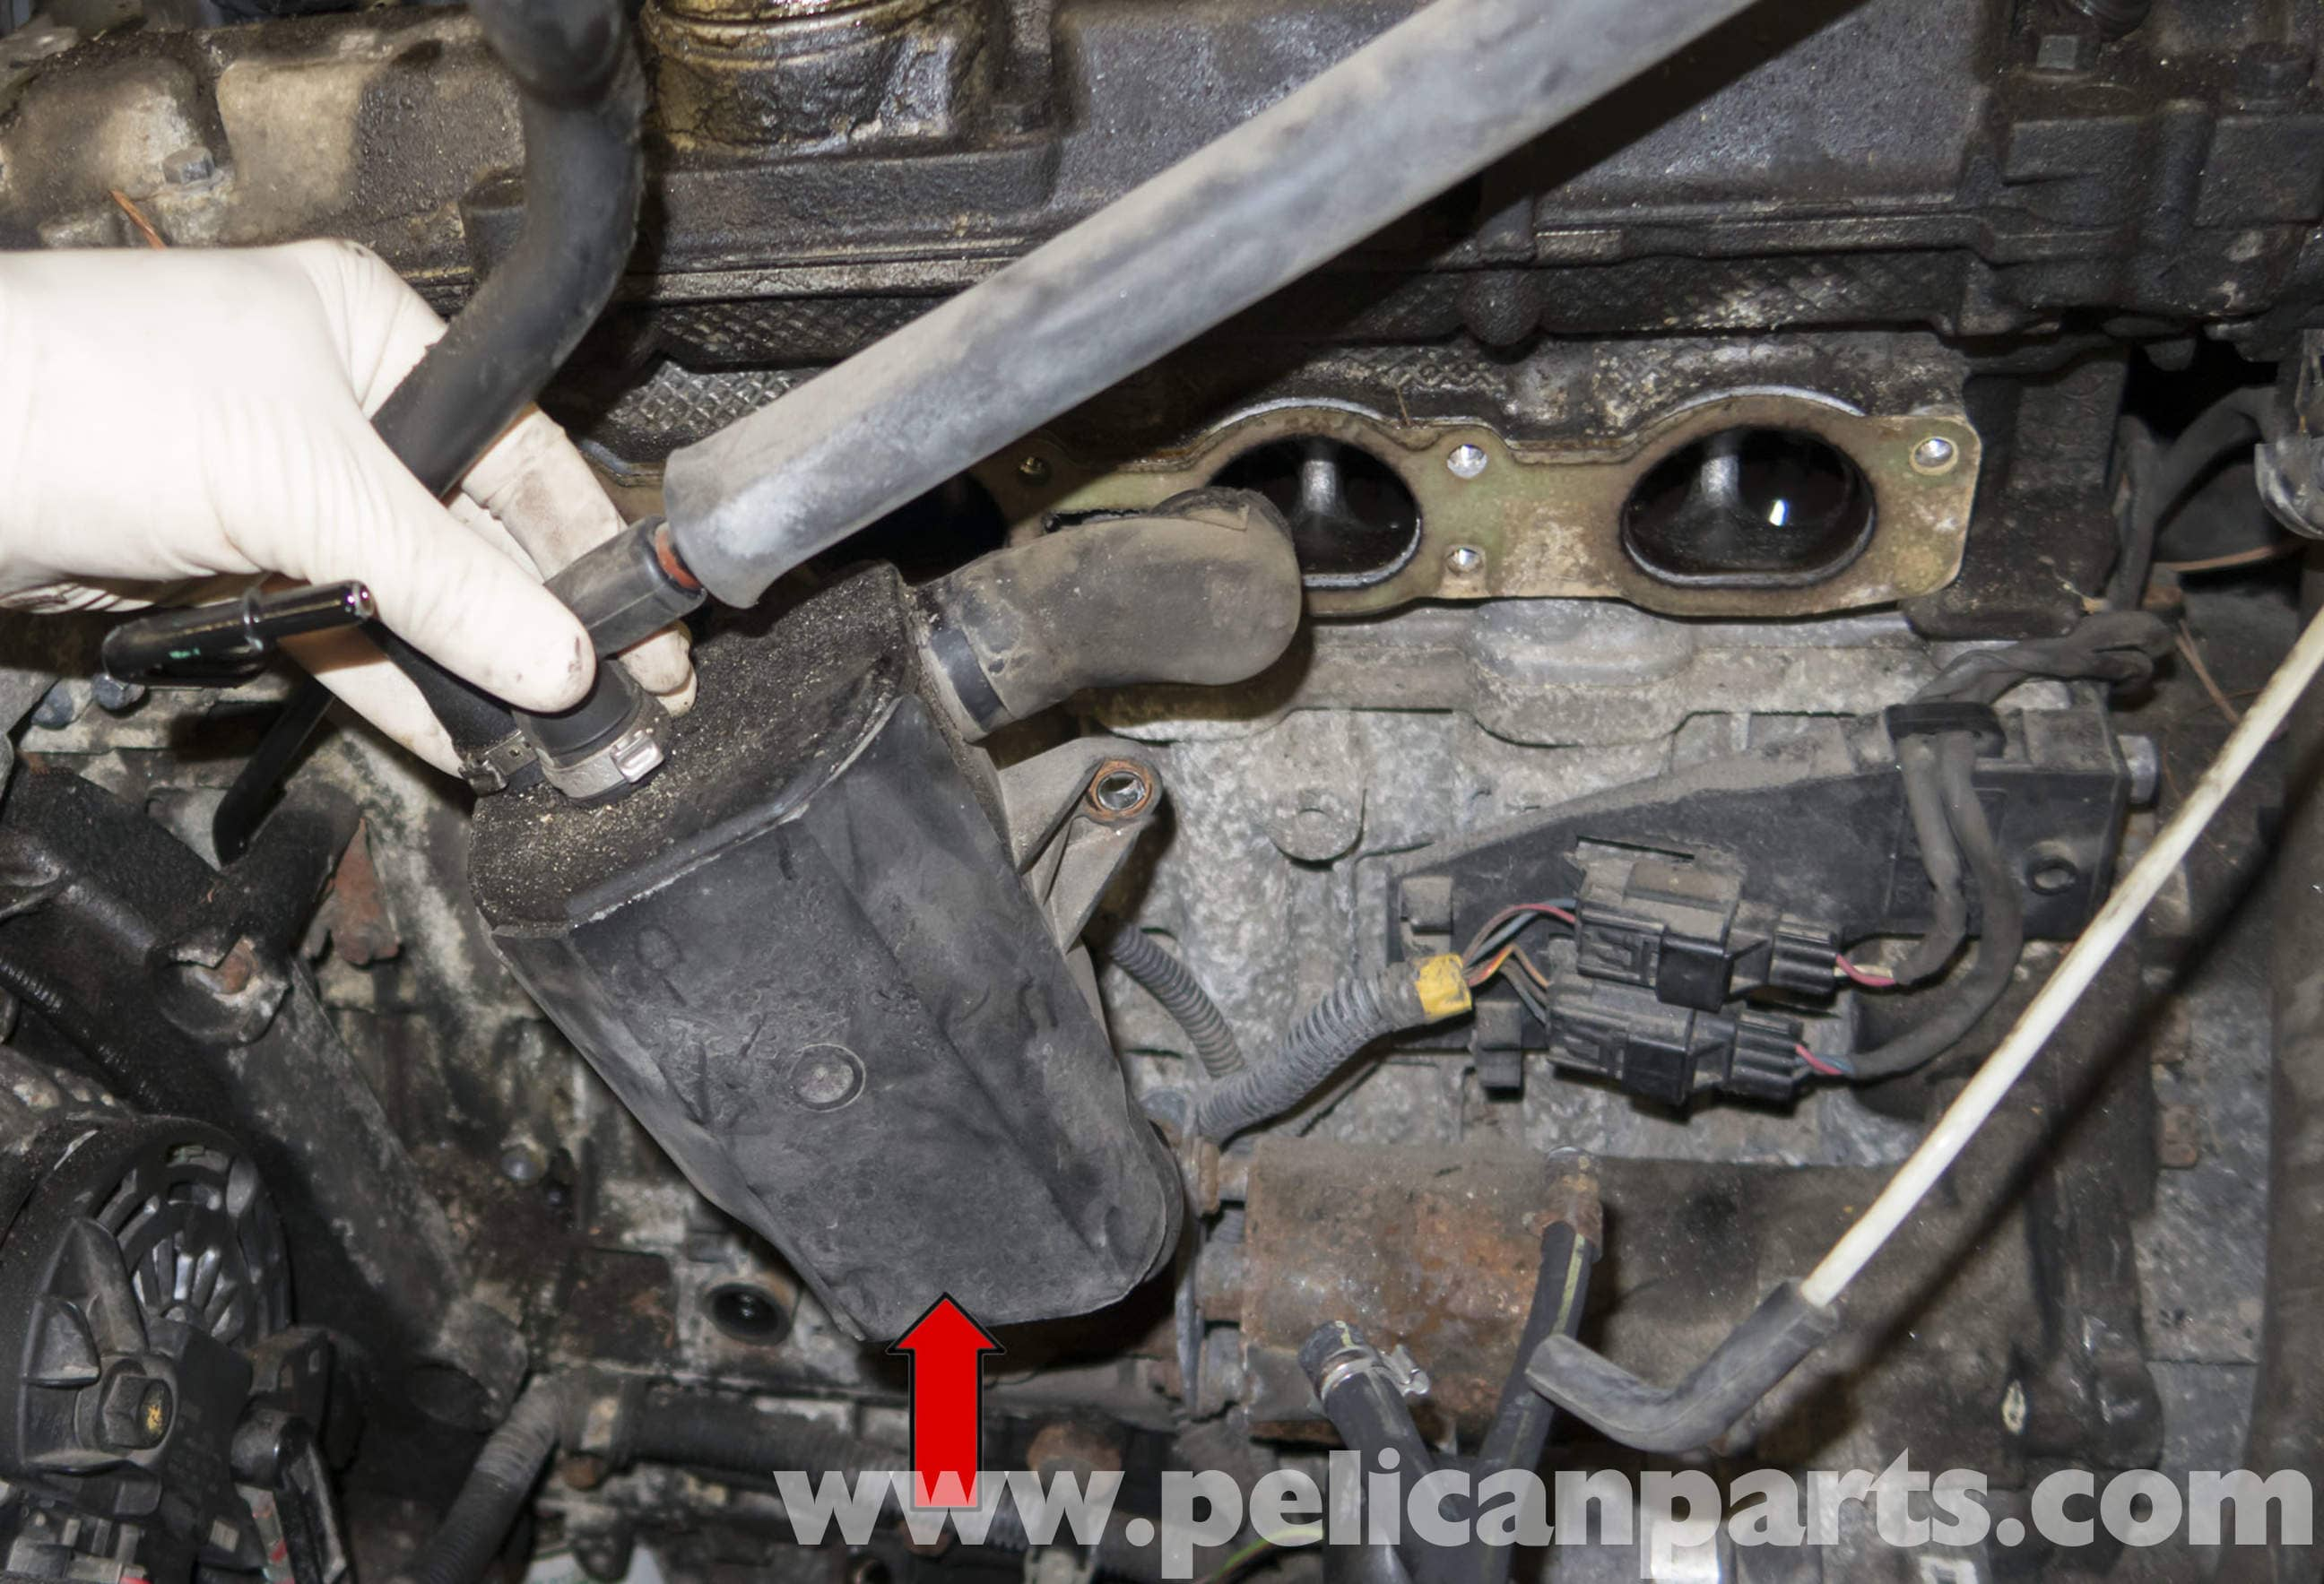 Oil Pan Leak >> Volvo V70 Crankcase Breather Replacement (1998-2007 ...